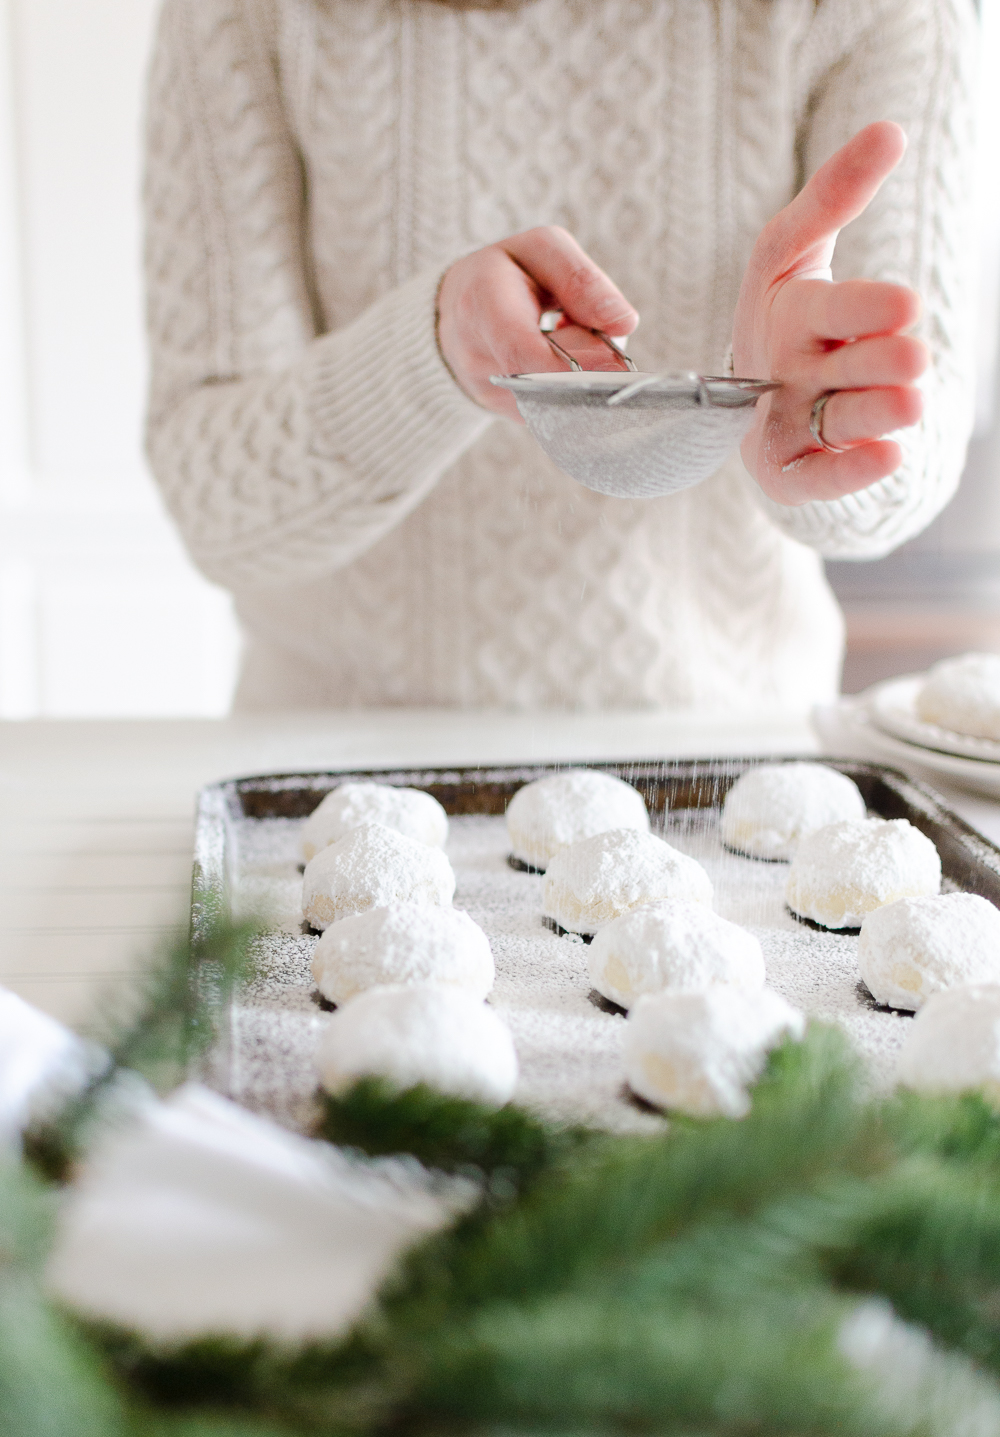 These melt-in-your-mouth shortbread cookiessprinkled in icing sugar are sure to become a Christmas favorite. Find the recipe for this holiday classic along with 18 other delicious Christmas cookies.